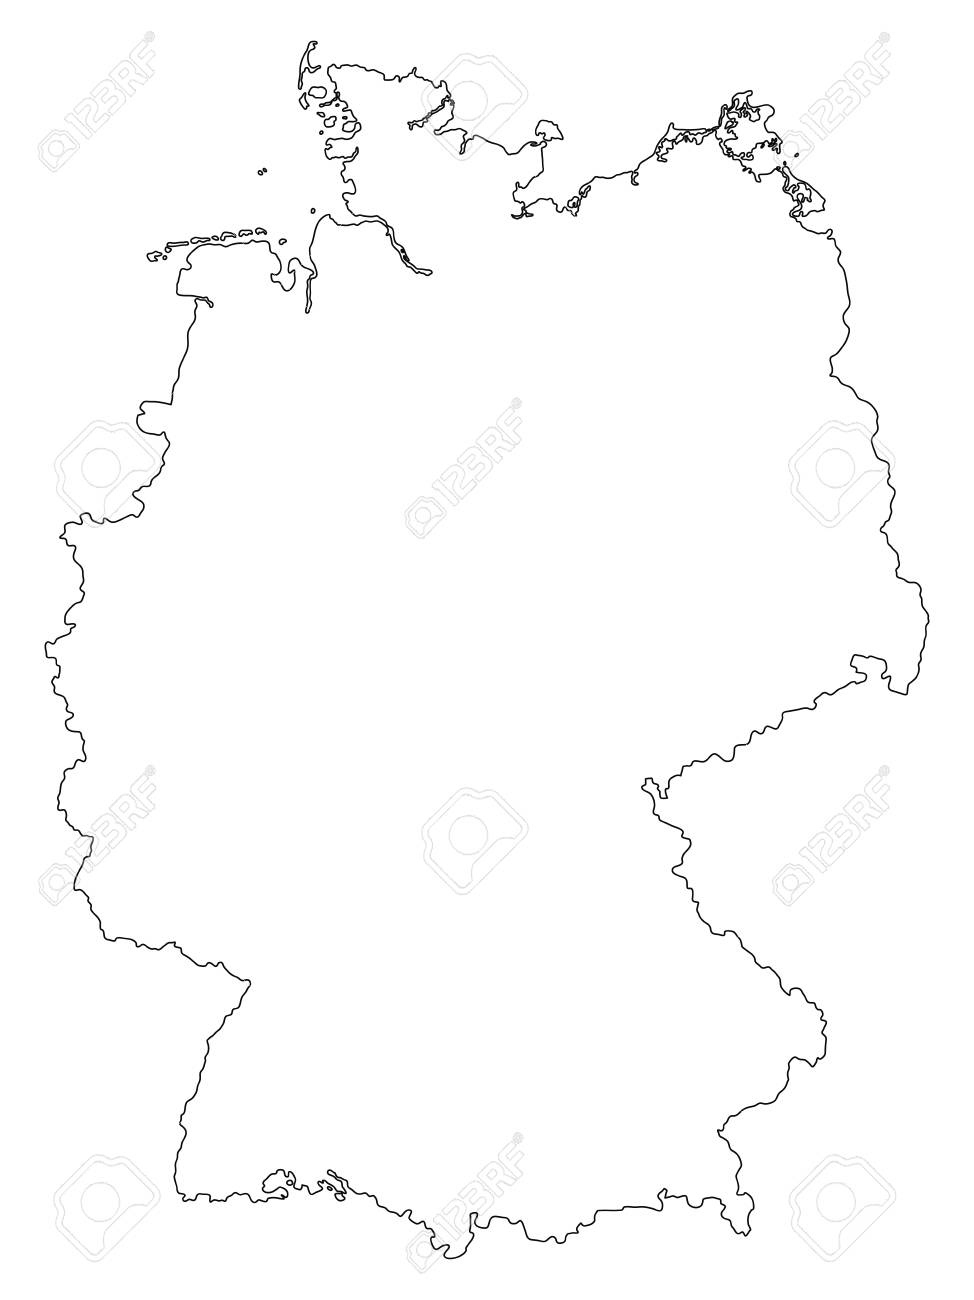 Vector Germany Outline Map Isolated On White Background. inside Outline Map Of Germany And Surrounding Countries